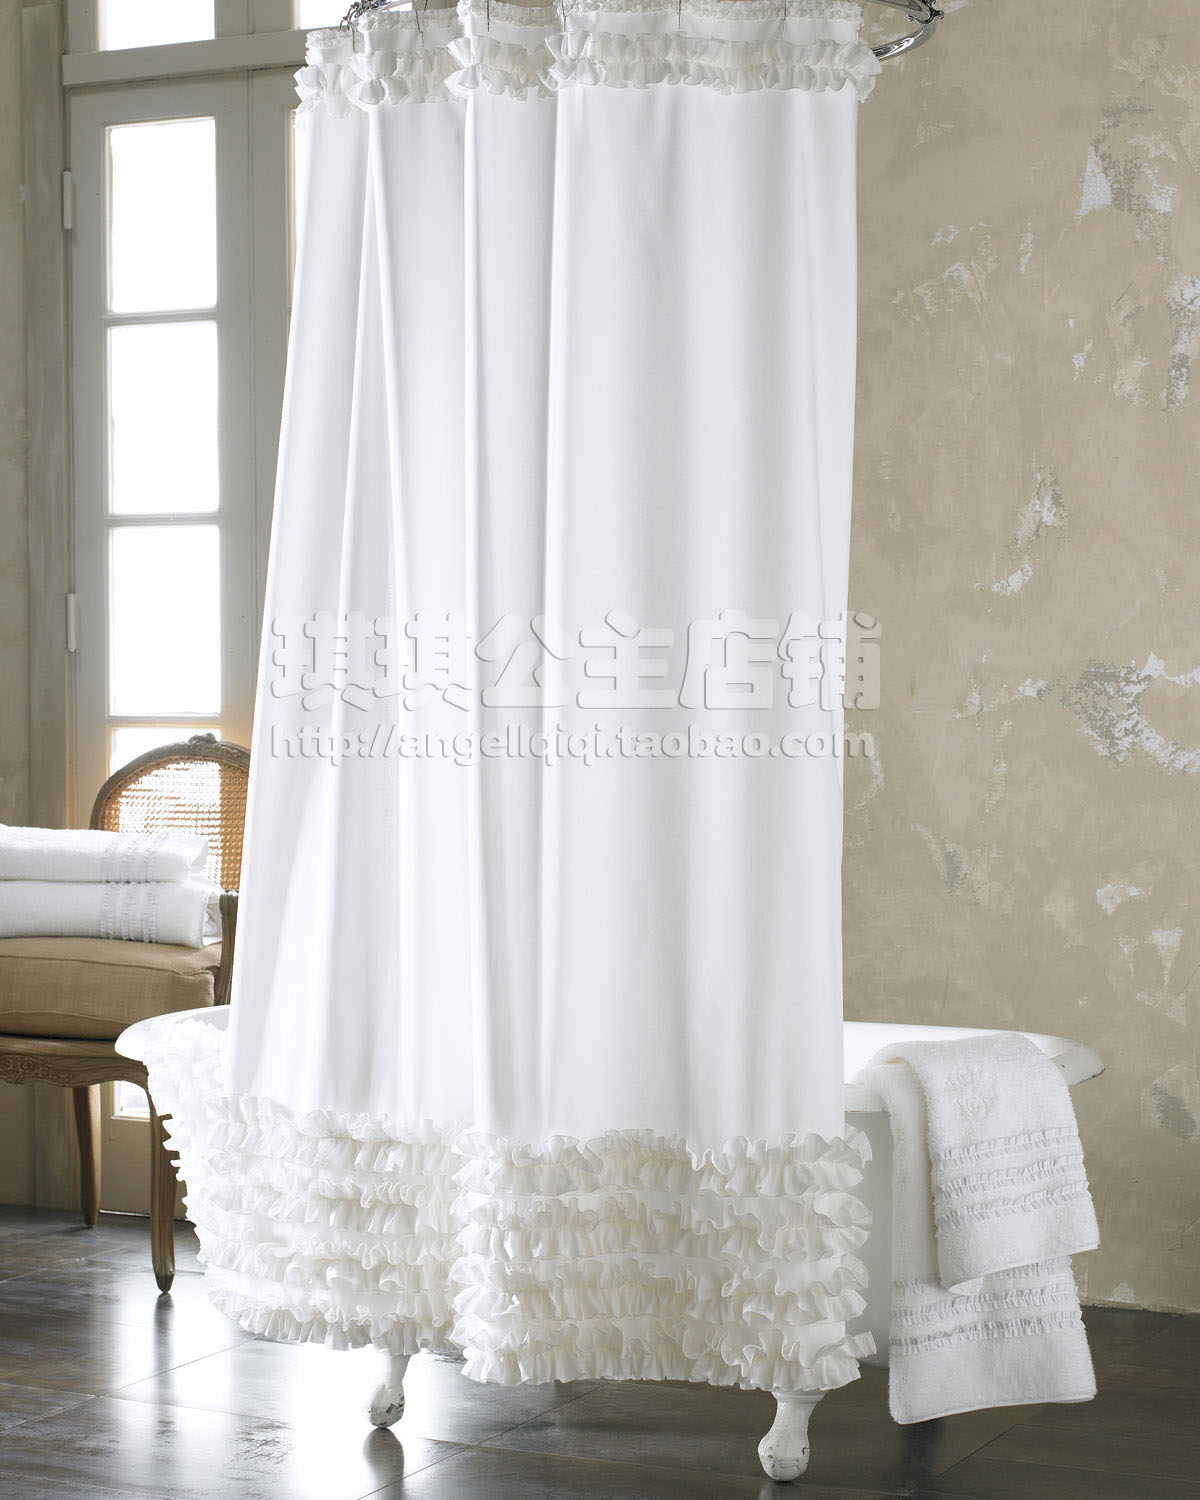 Compare Prices On Plain Shower Curtain Online Shopping Buy Low Price Plain Shower Curtain At